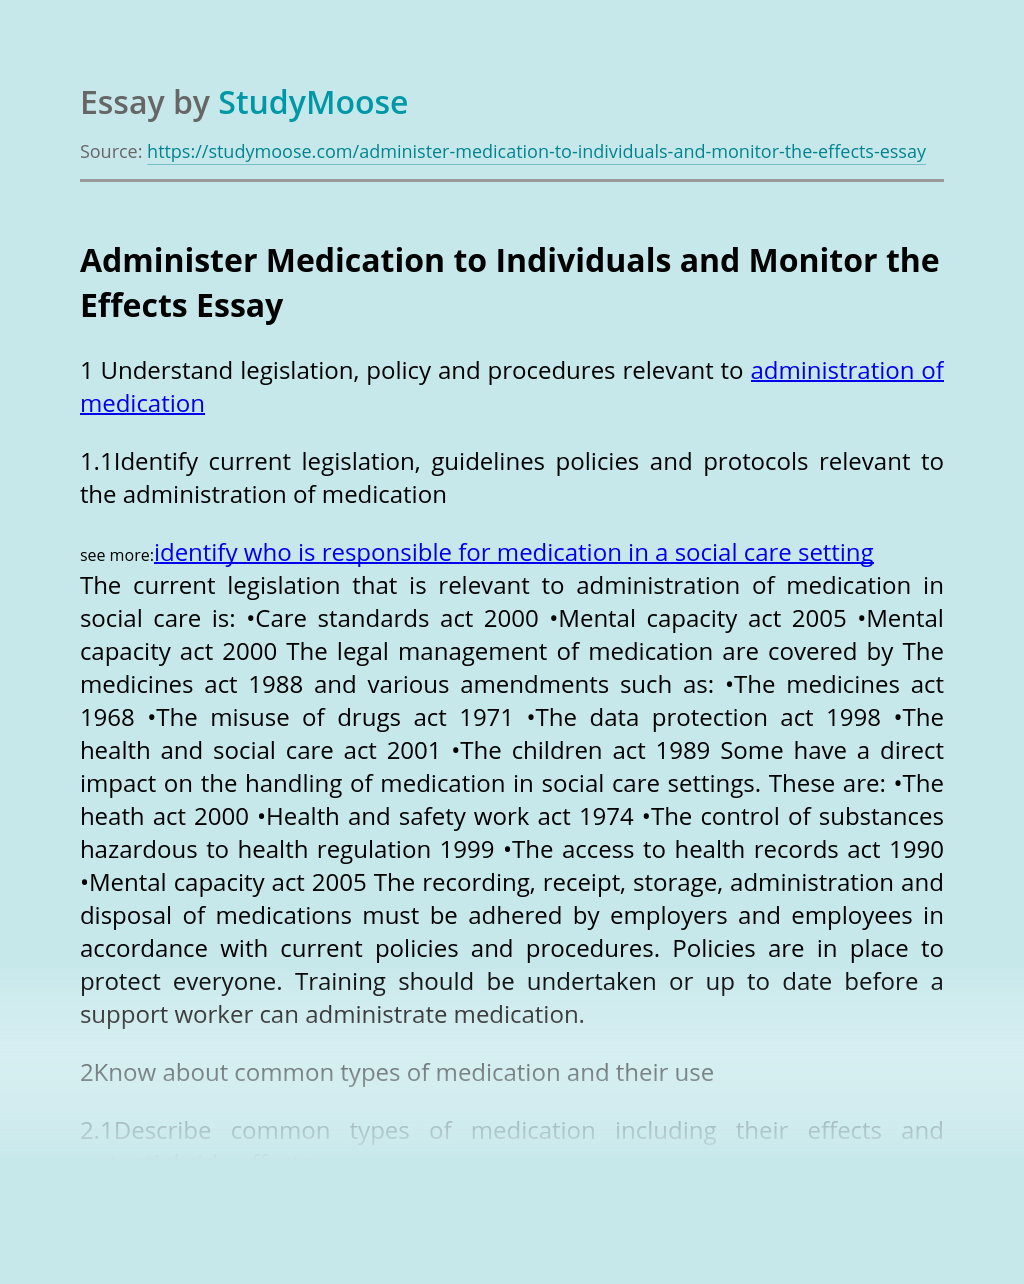 Administer Medication to Individuals and Monitor the Effects